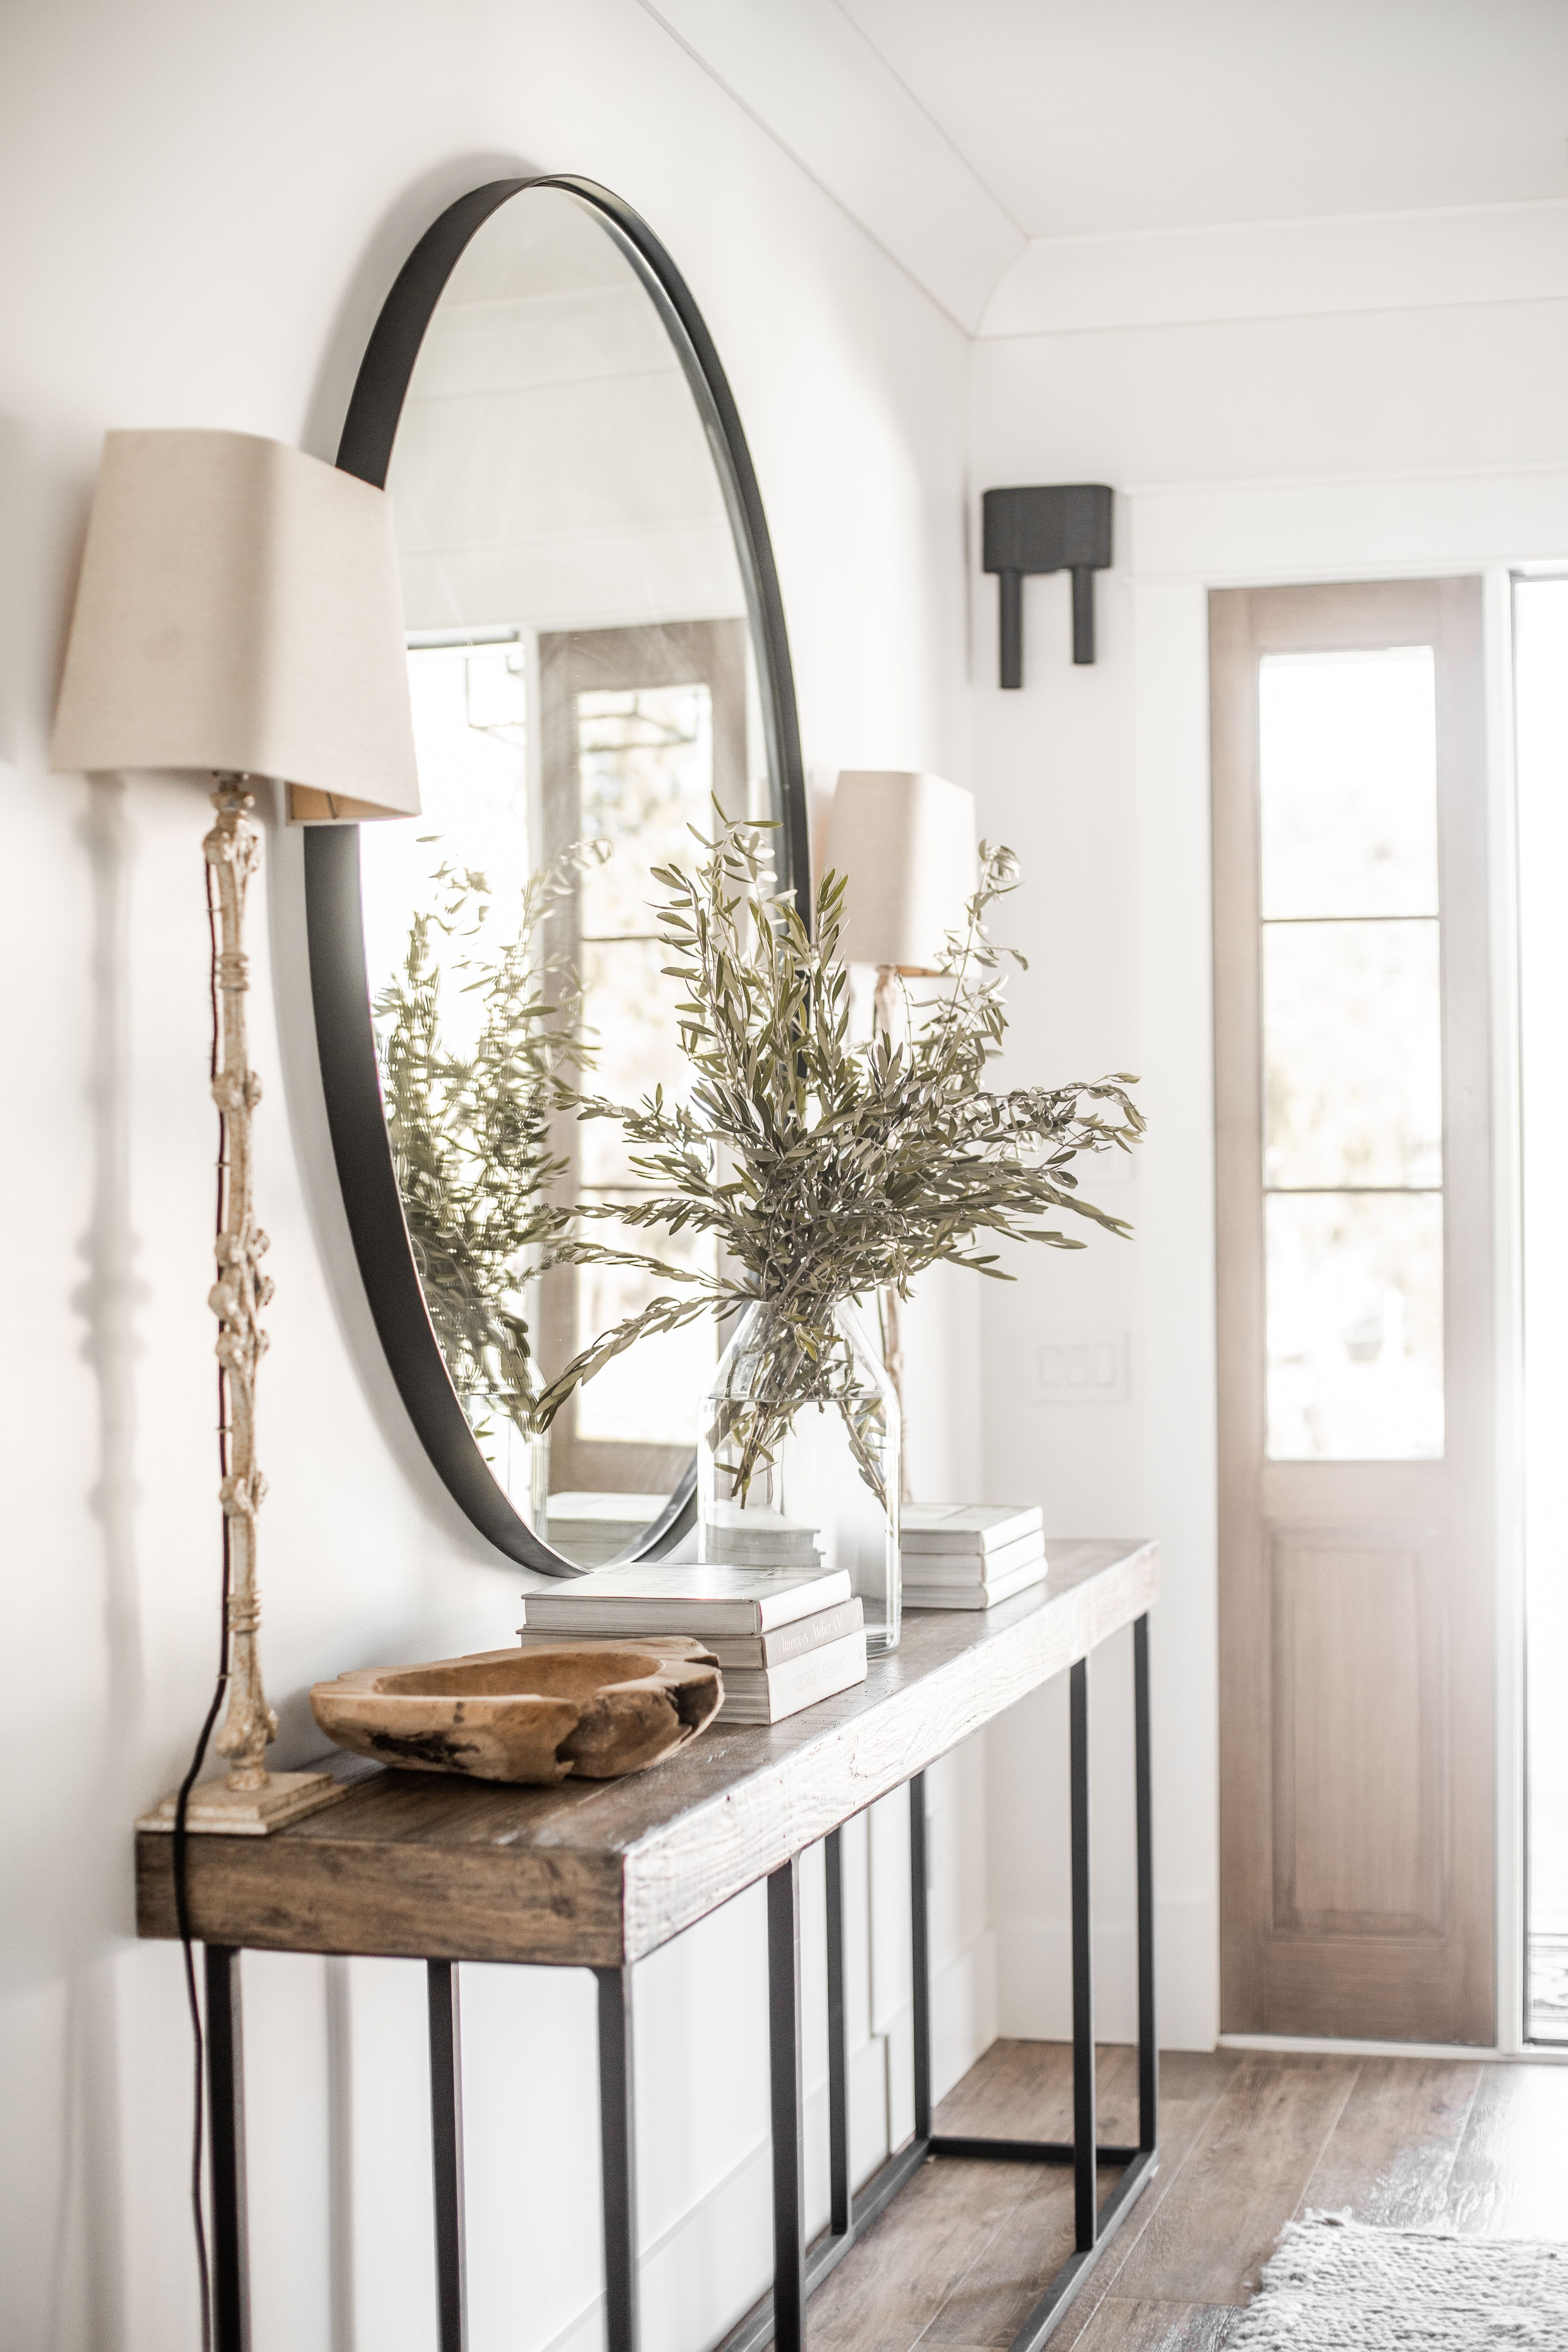 The Entry Table Ideas Are Small Points We Need To Consider For